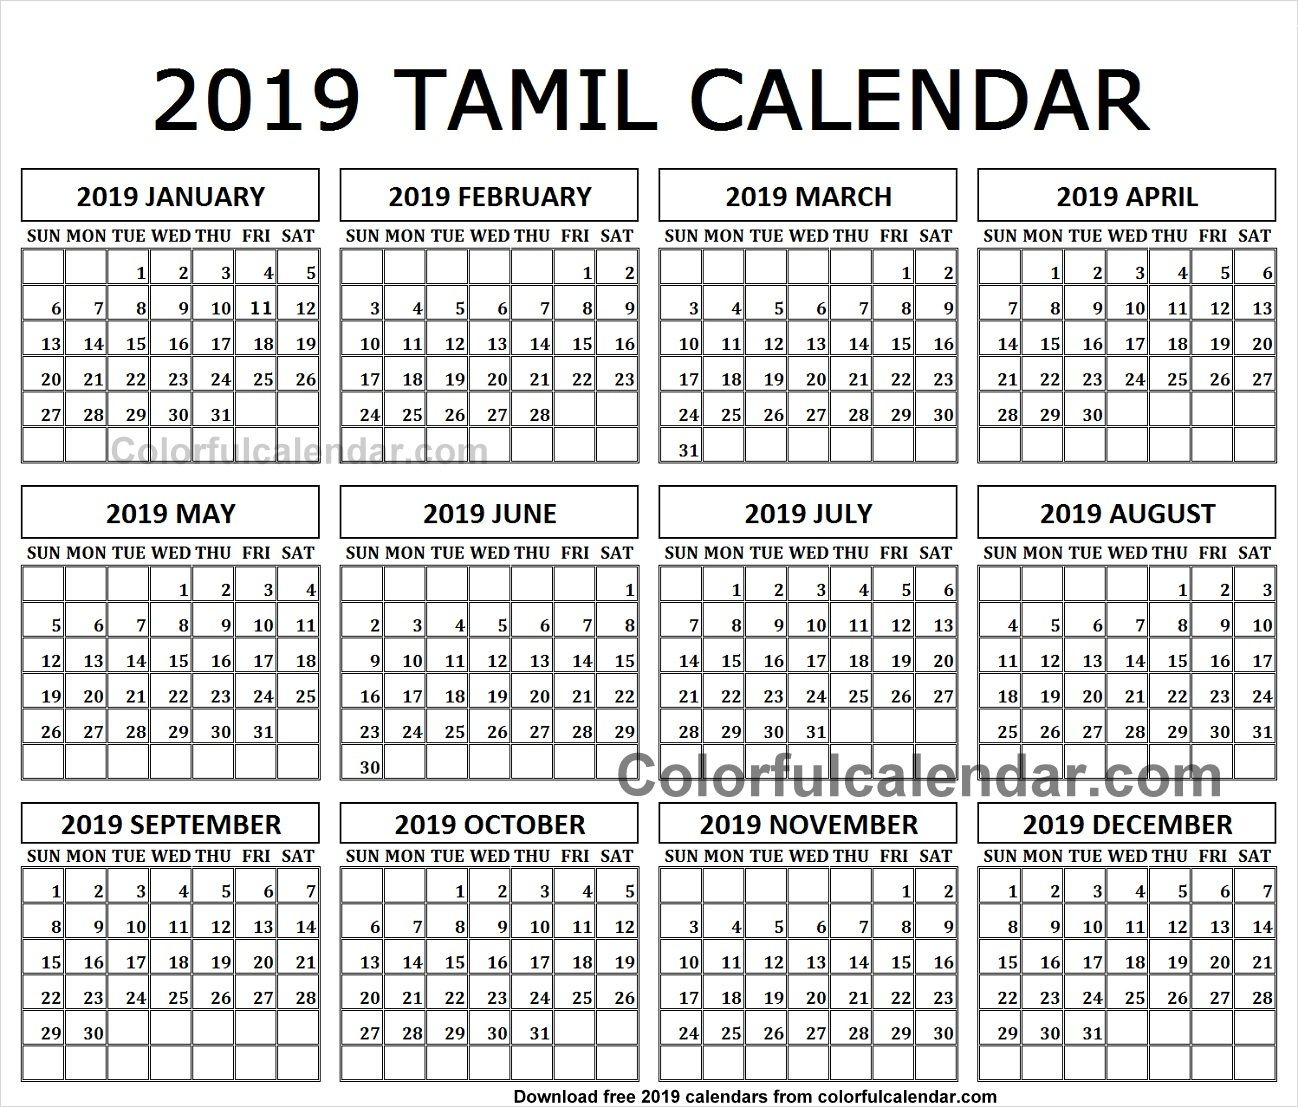 Calendar 2019 Tamil And English Template Designs Calendar Tamil